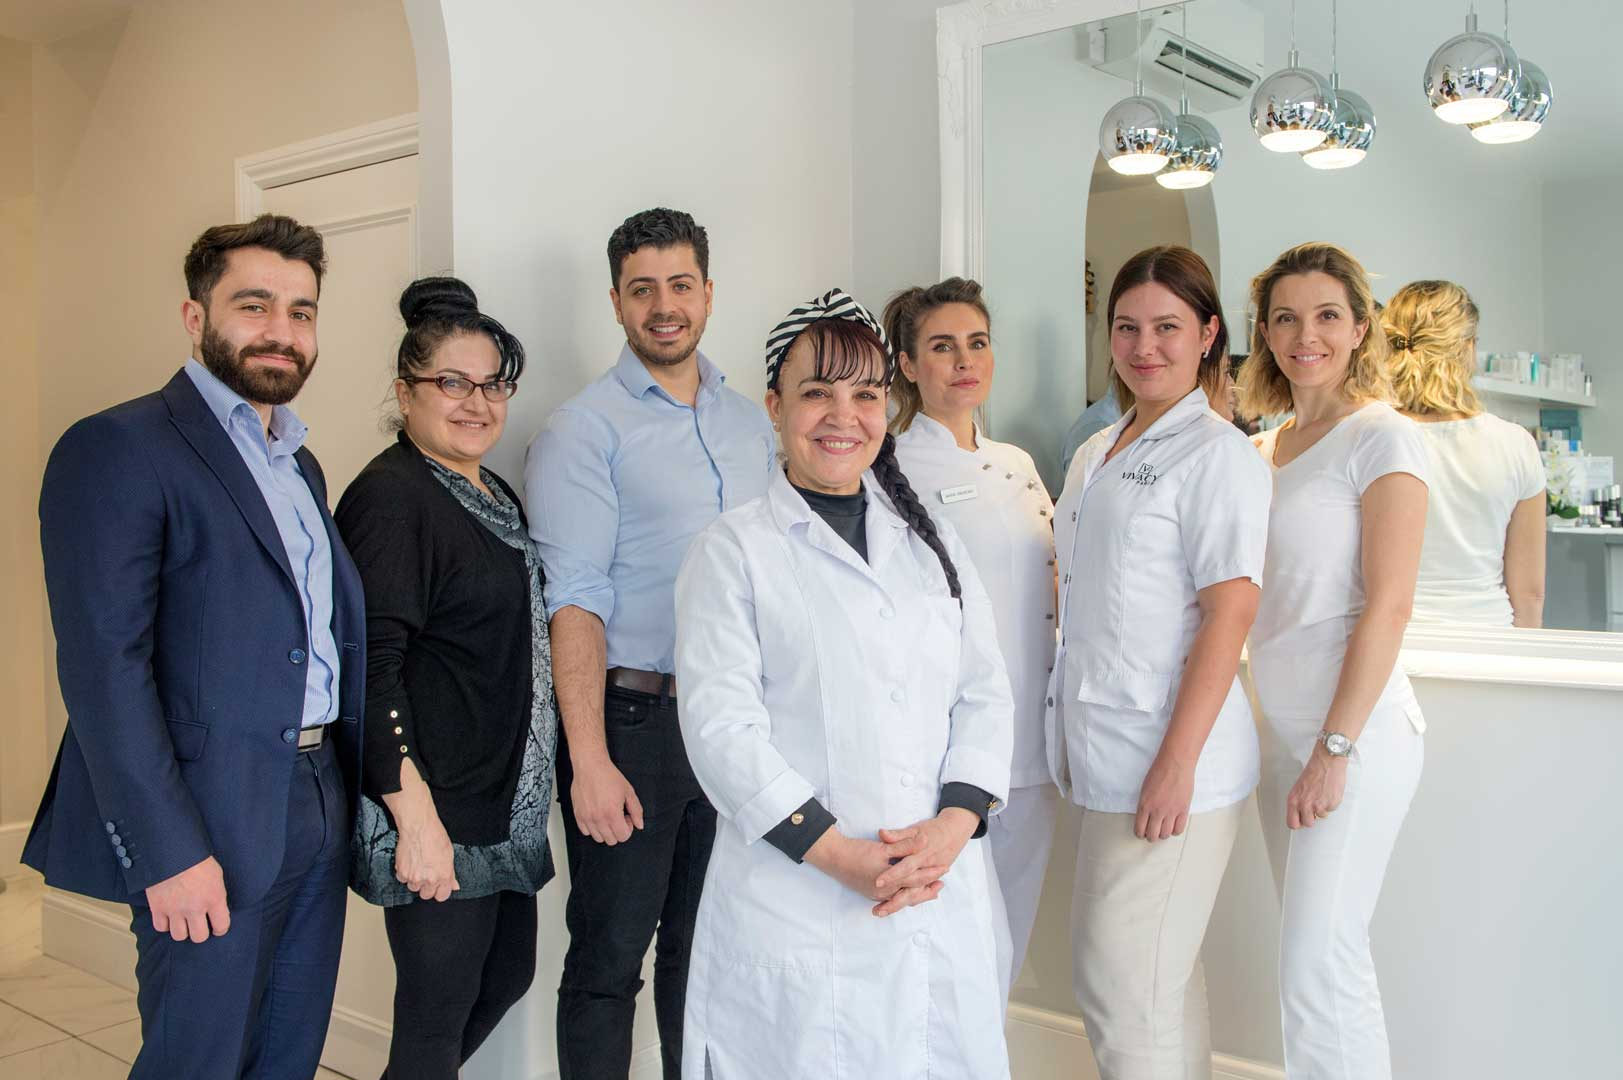 Fulham Health & Beauty: Dr Hala Medical Aesthetics – Make Sure You Are All Set For Autumn